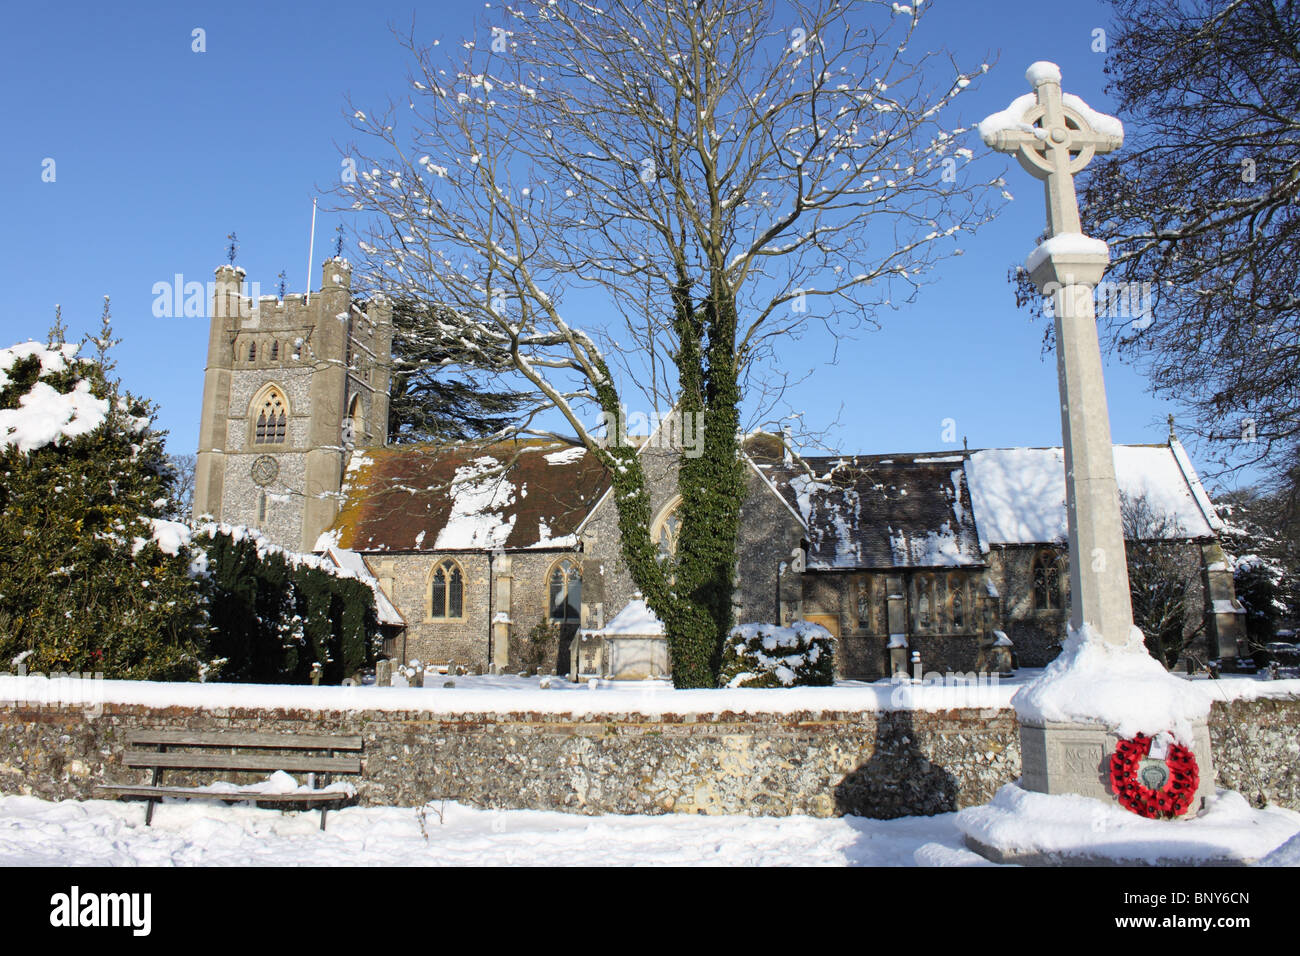 Saint Mary's Church and War Memorial, Hambleden village in the snow, Chiltern Hills, Buckinghamshire, England, - Stock Image